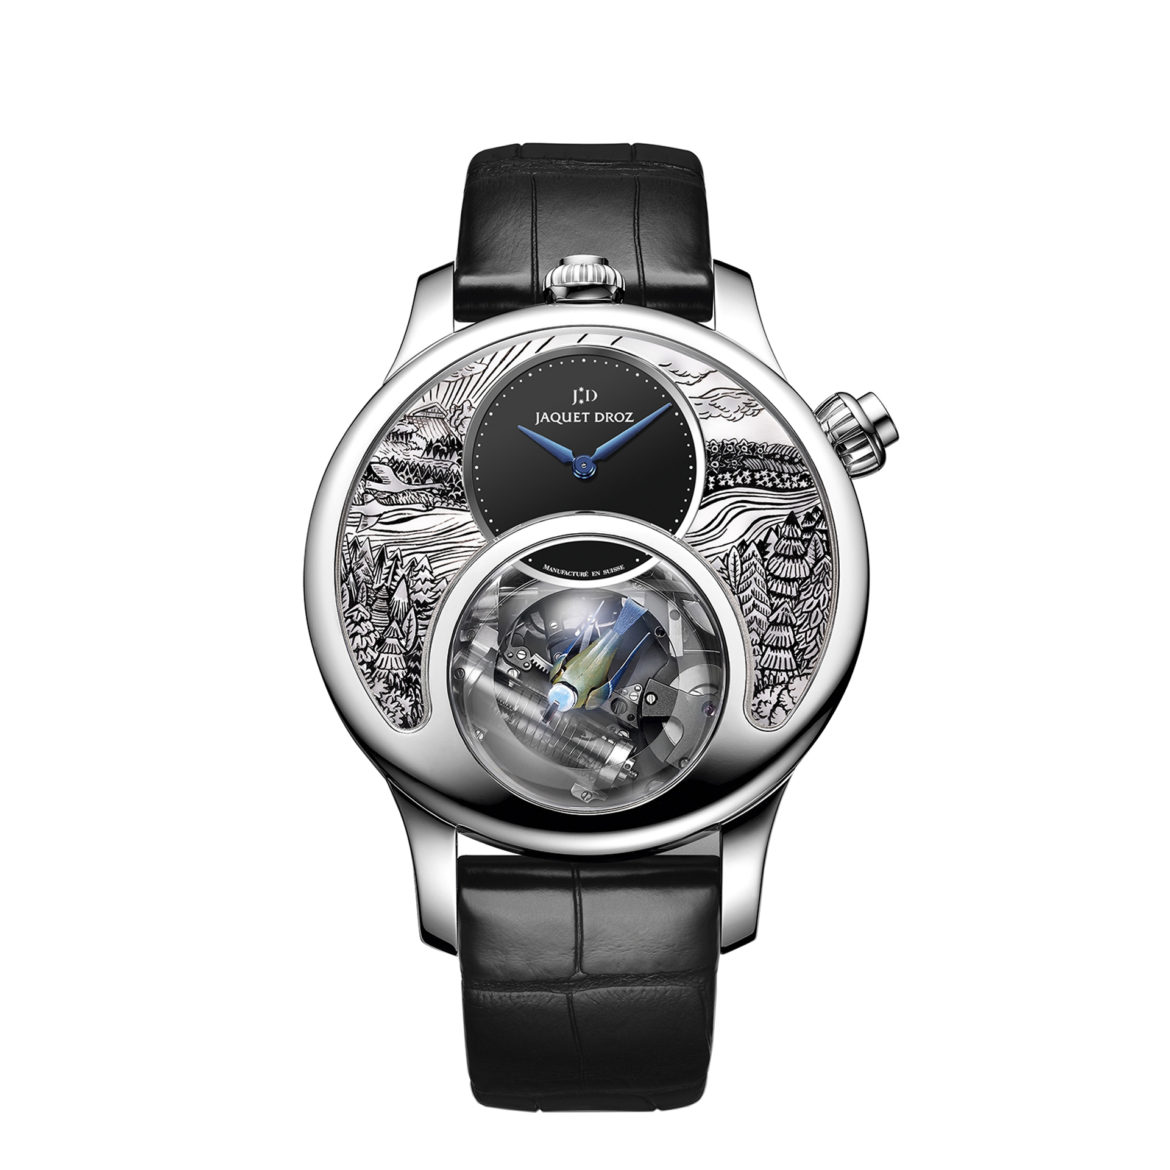 Jaquet Droz Charming Bird - the art of nature at its peak